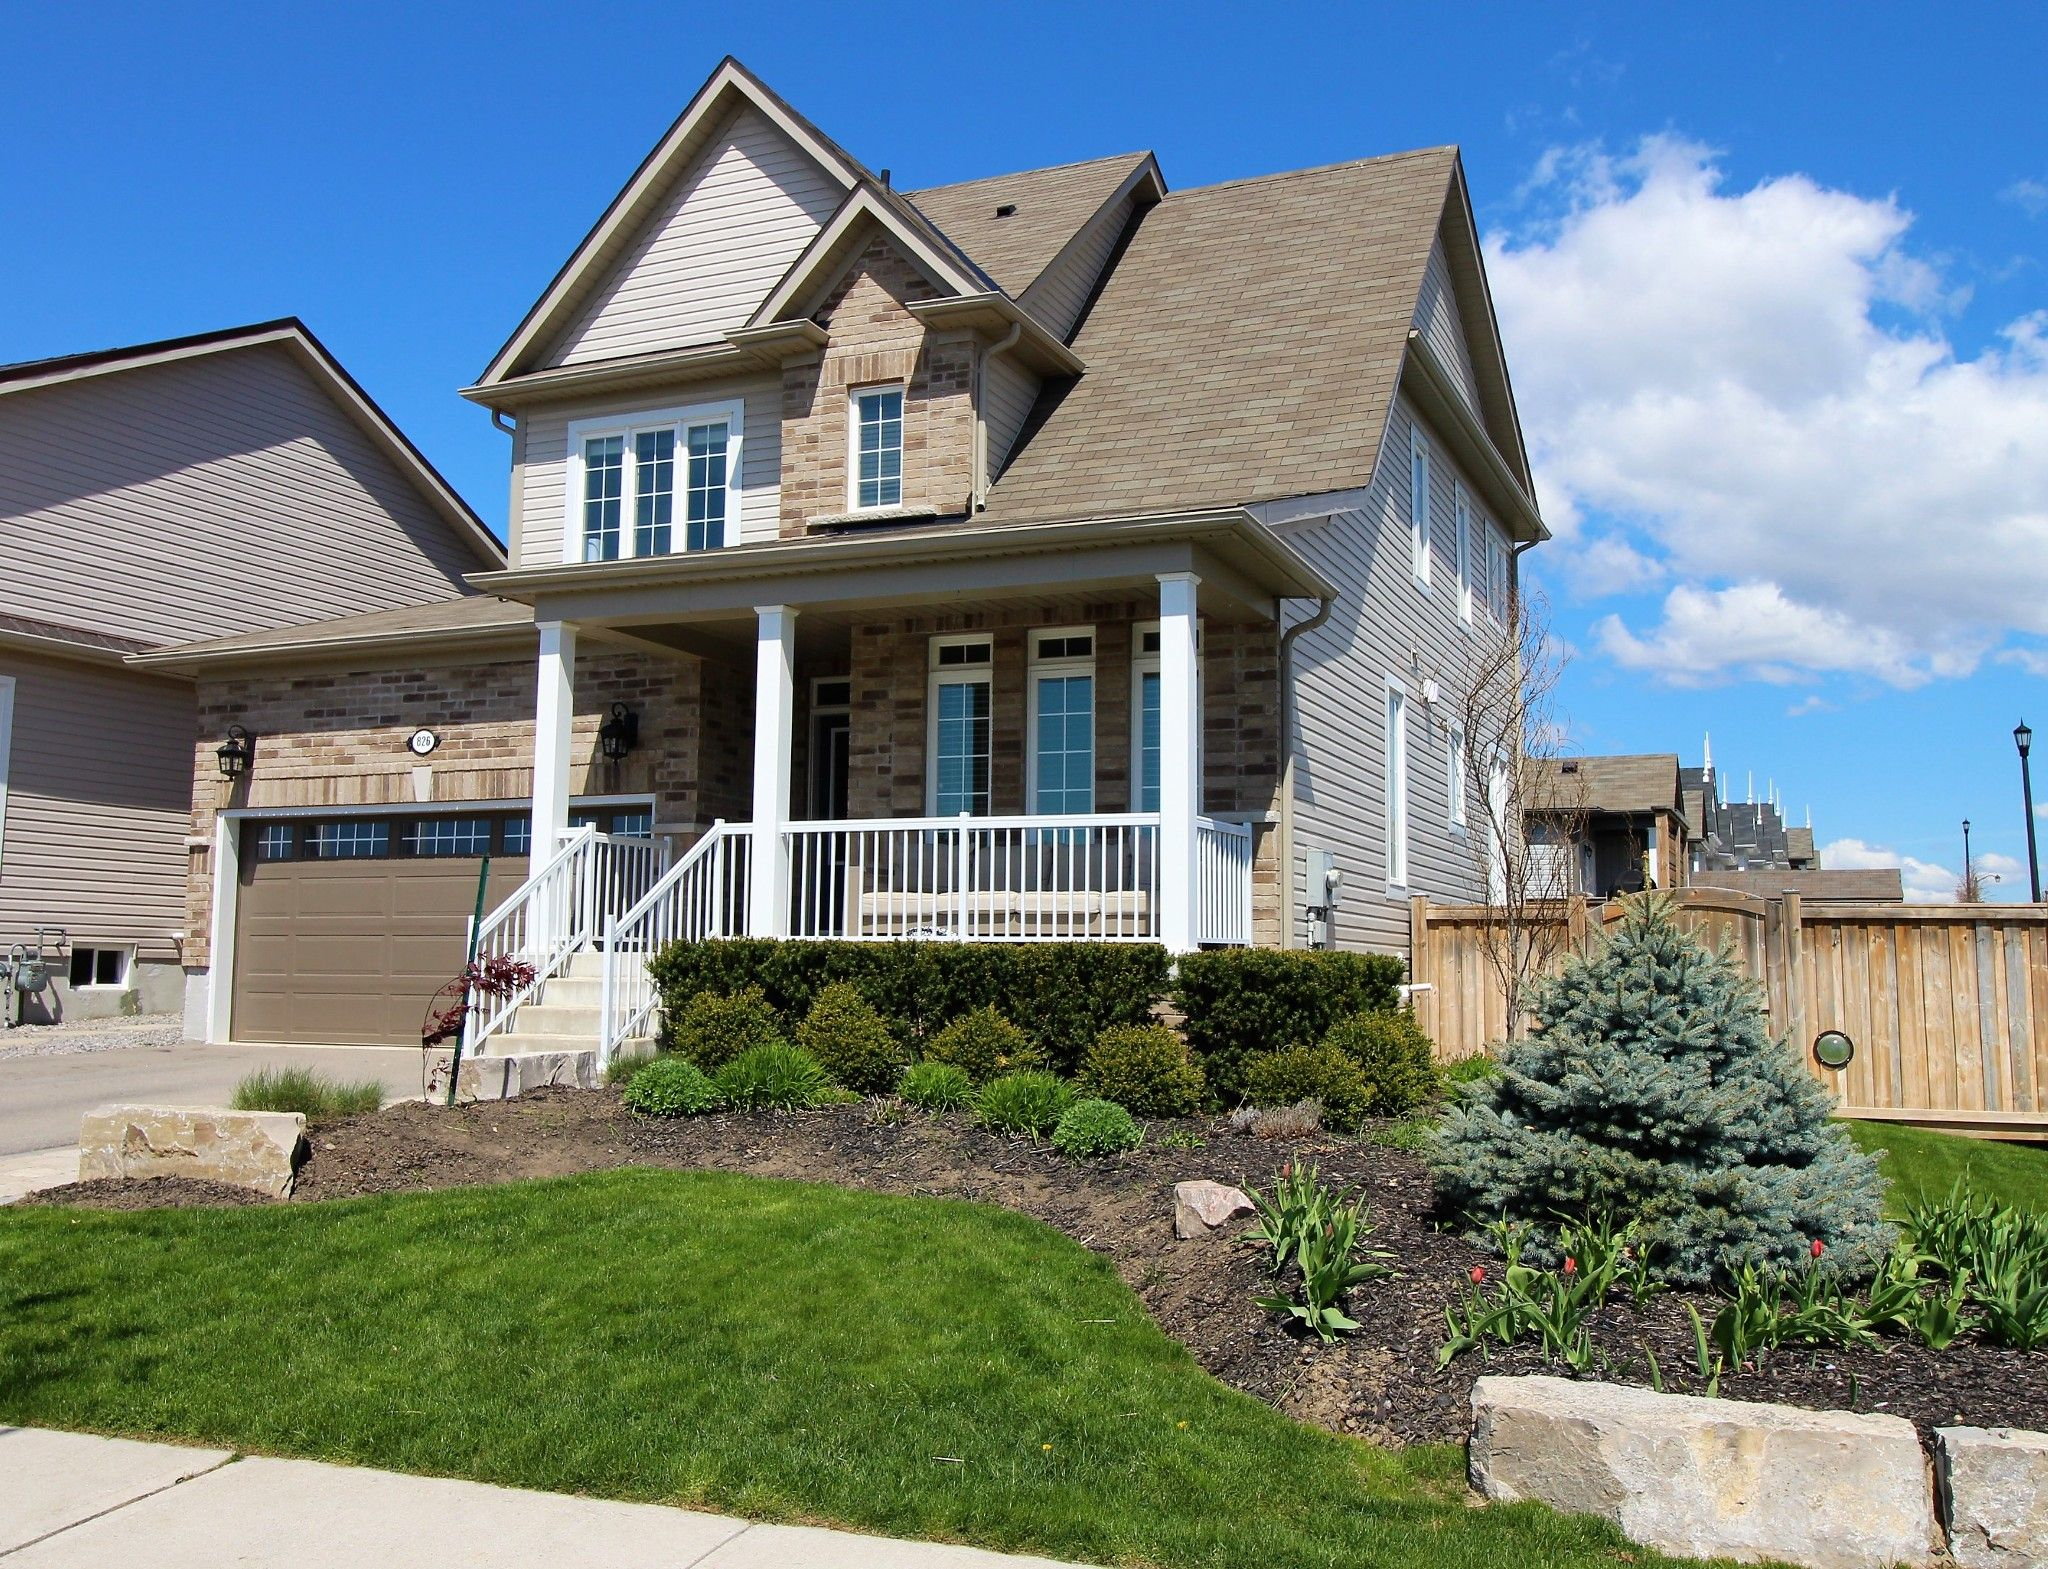 Main Photo: 826 McMurdo Drive in Cobourg: House for sale : MLS®# X5232680